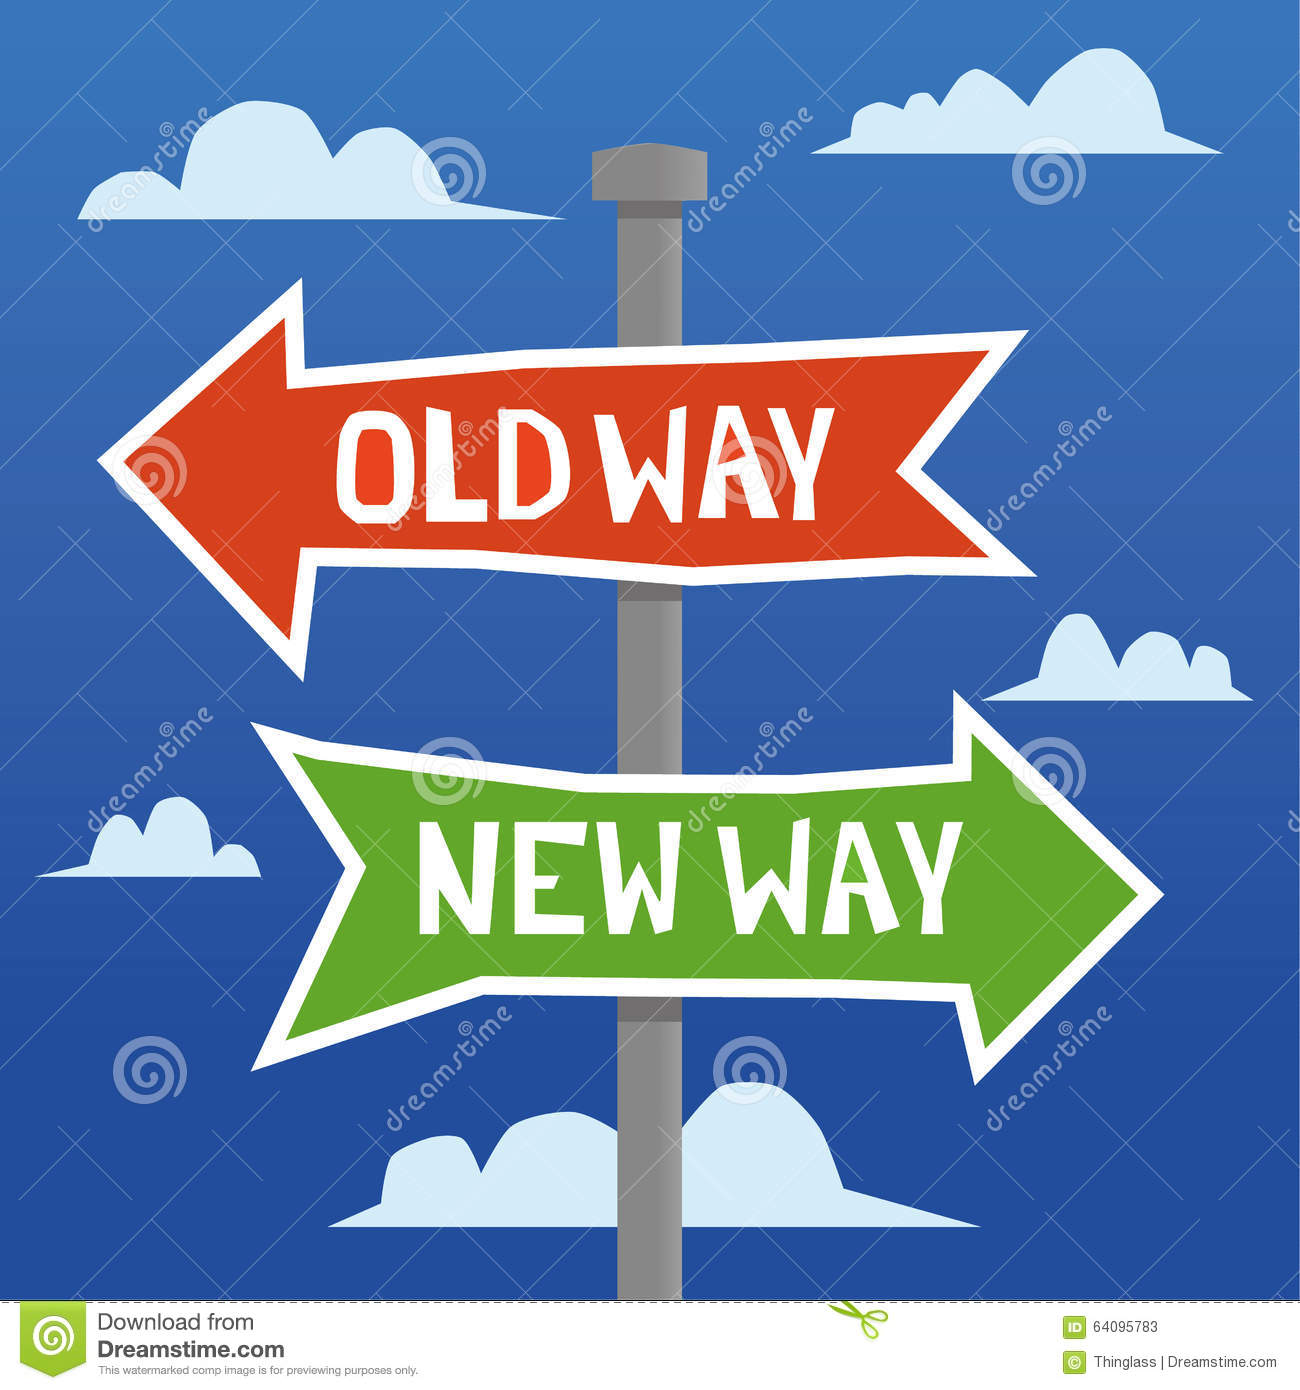 old way versus new way stock vector image 64095783 word clipart find word clipart find